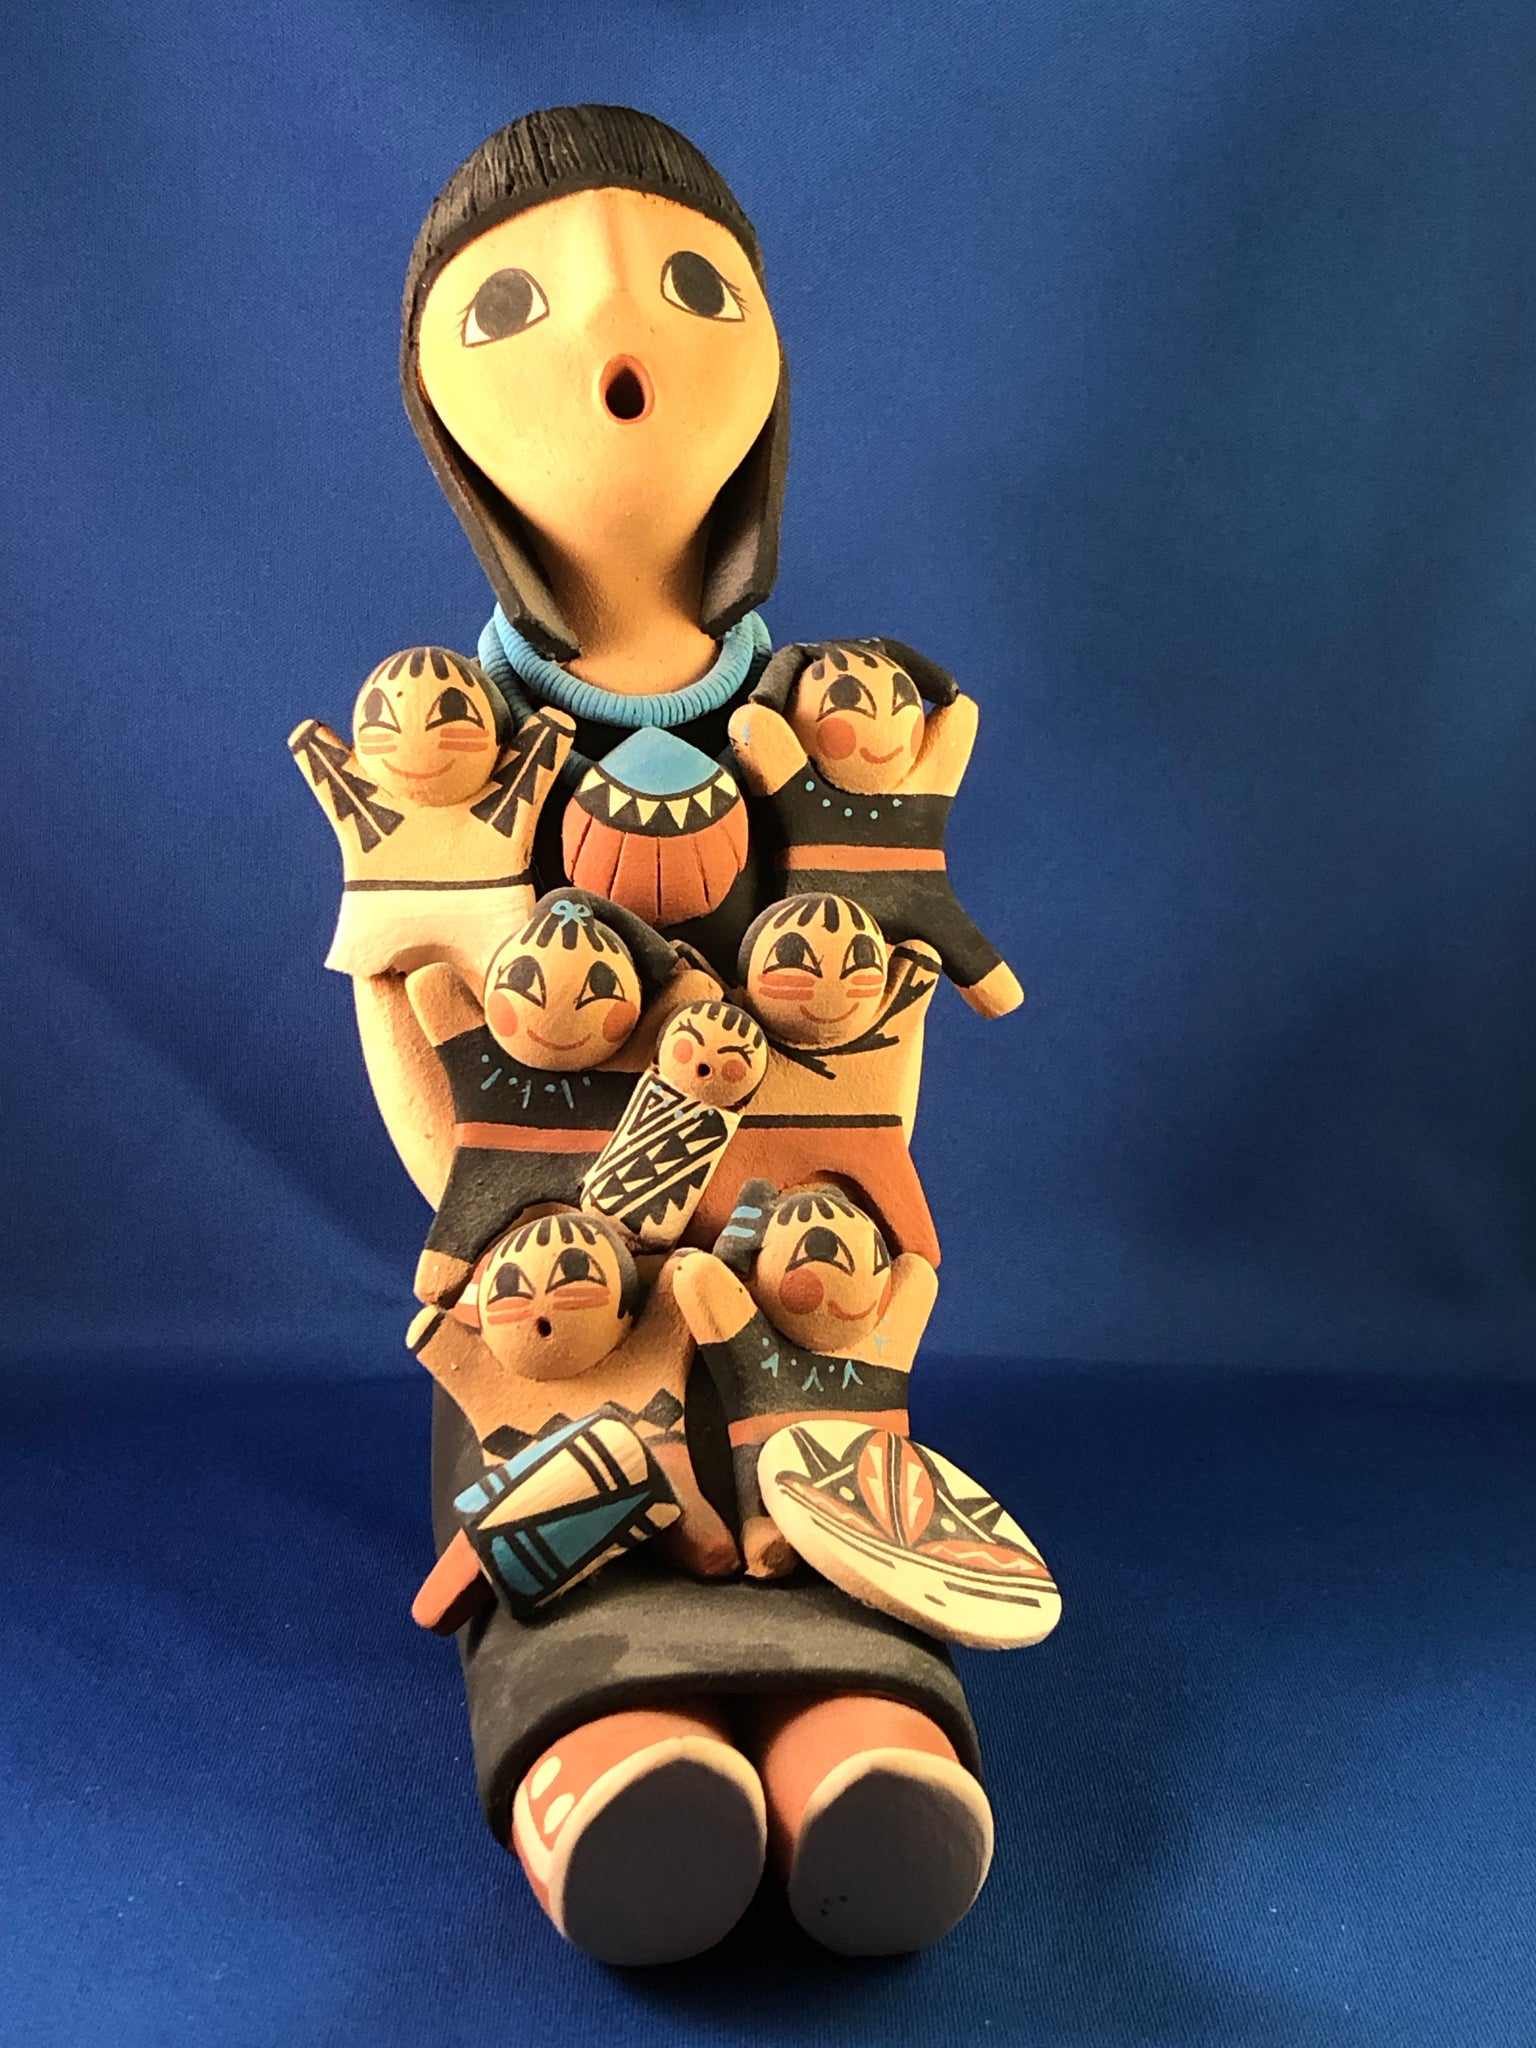 Storyteller Pottery with Seven Children by C. Armijo of Jemez Pueblo NM